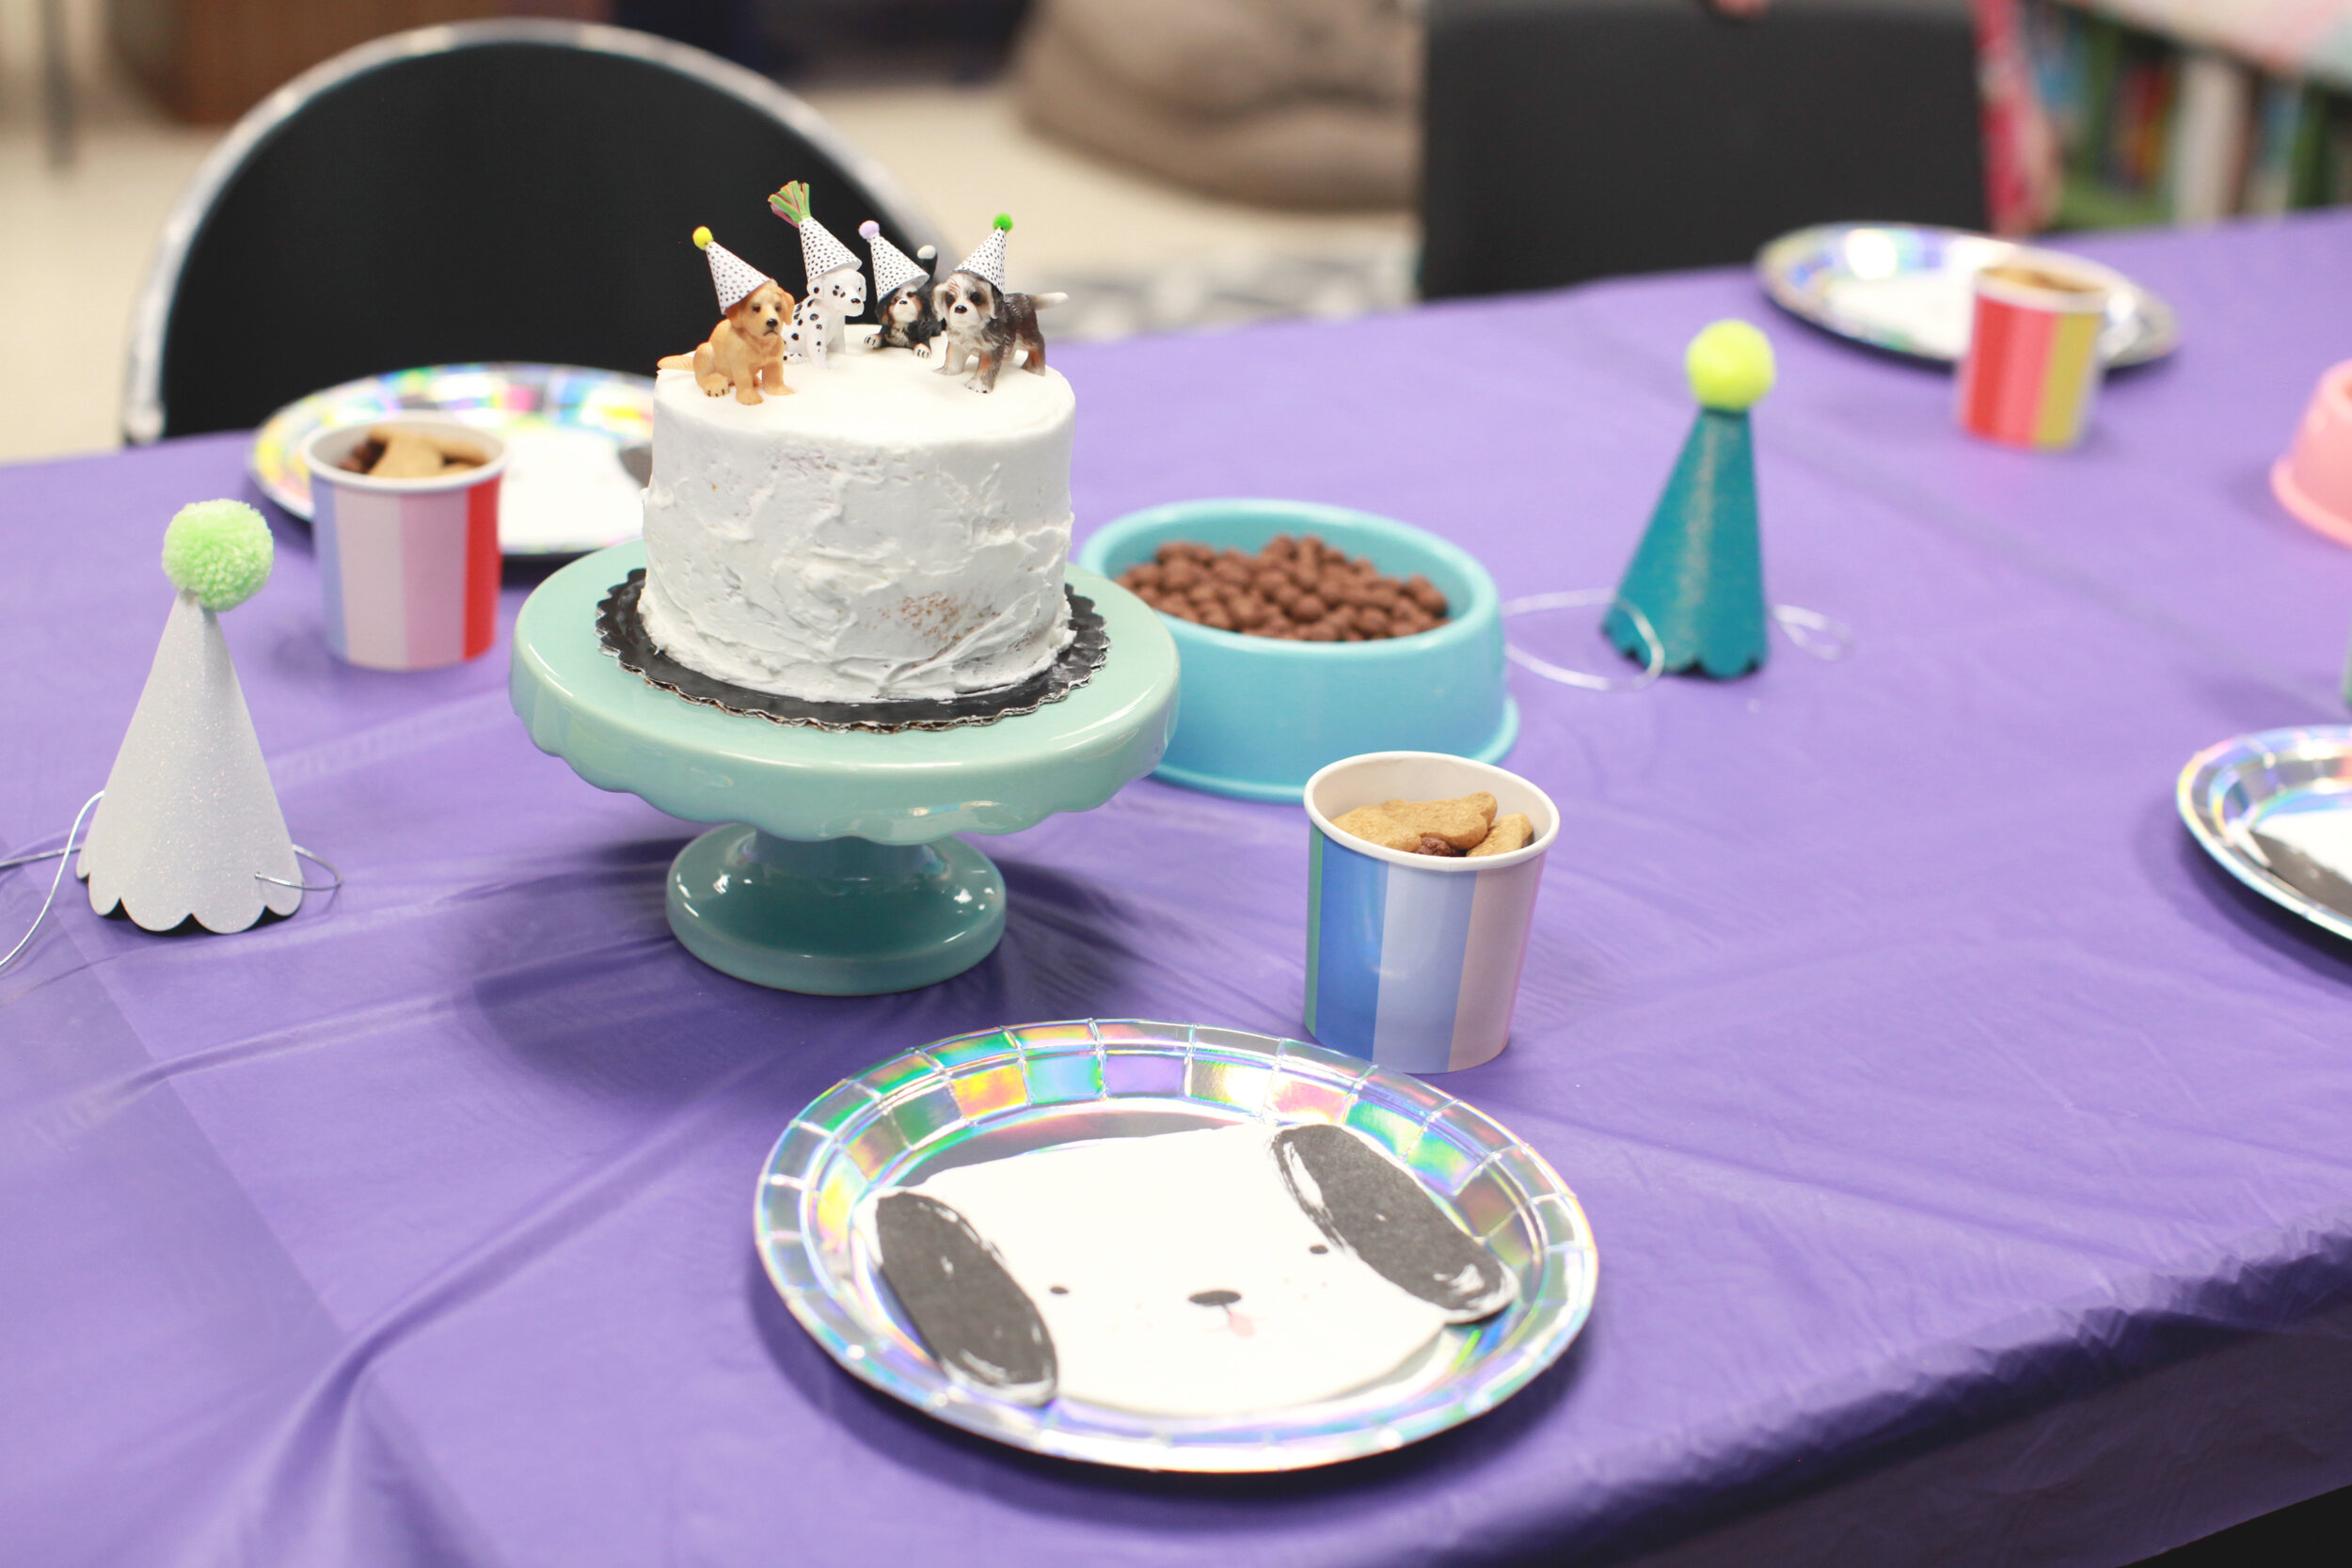 I had Cocoa Puffs and Scooby Snacks with the cake to look like puppy treats for his guests.